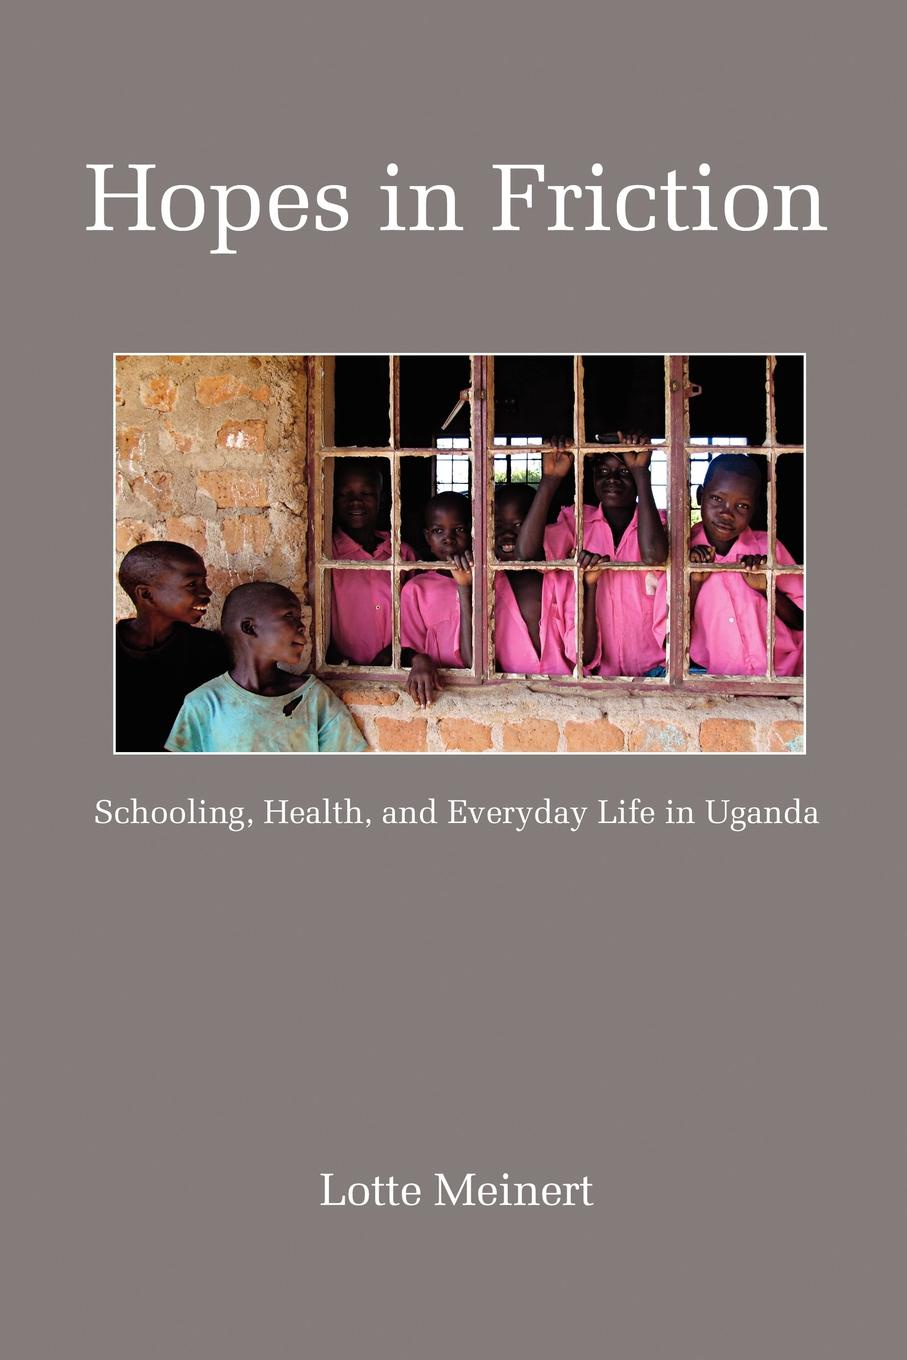 Lotte Meinert Hopes in Friction. Schooling, Health and Everyday Life in Uganda (PB) benon kigozi music education in uganda